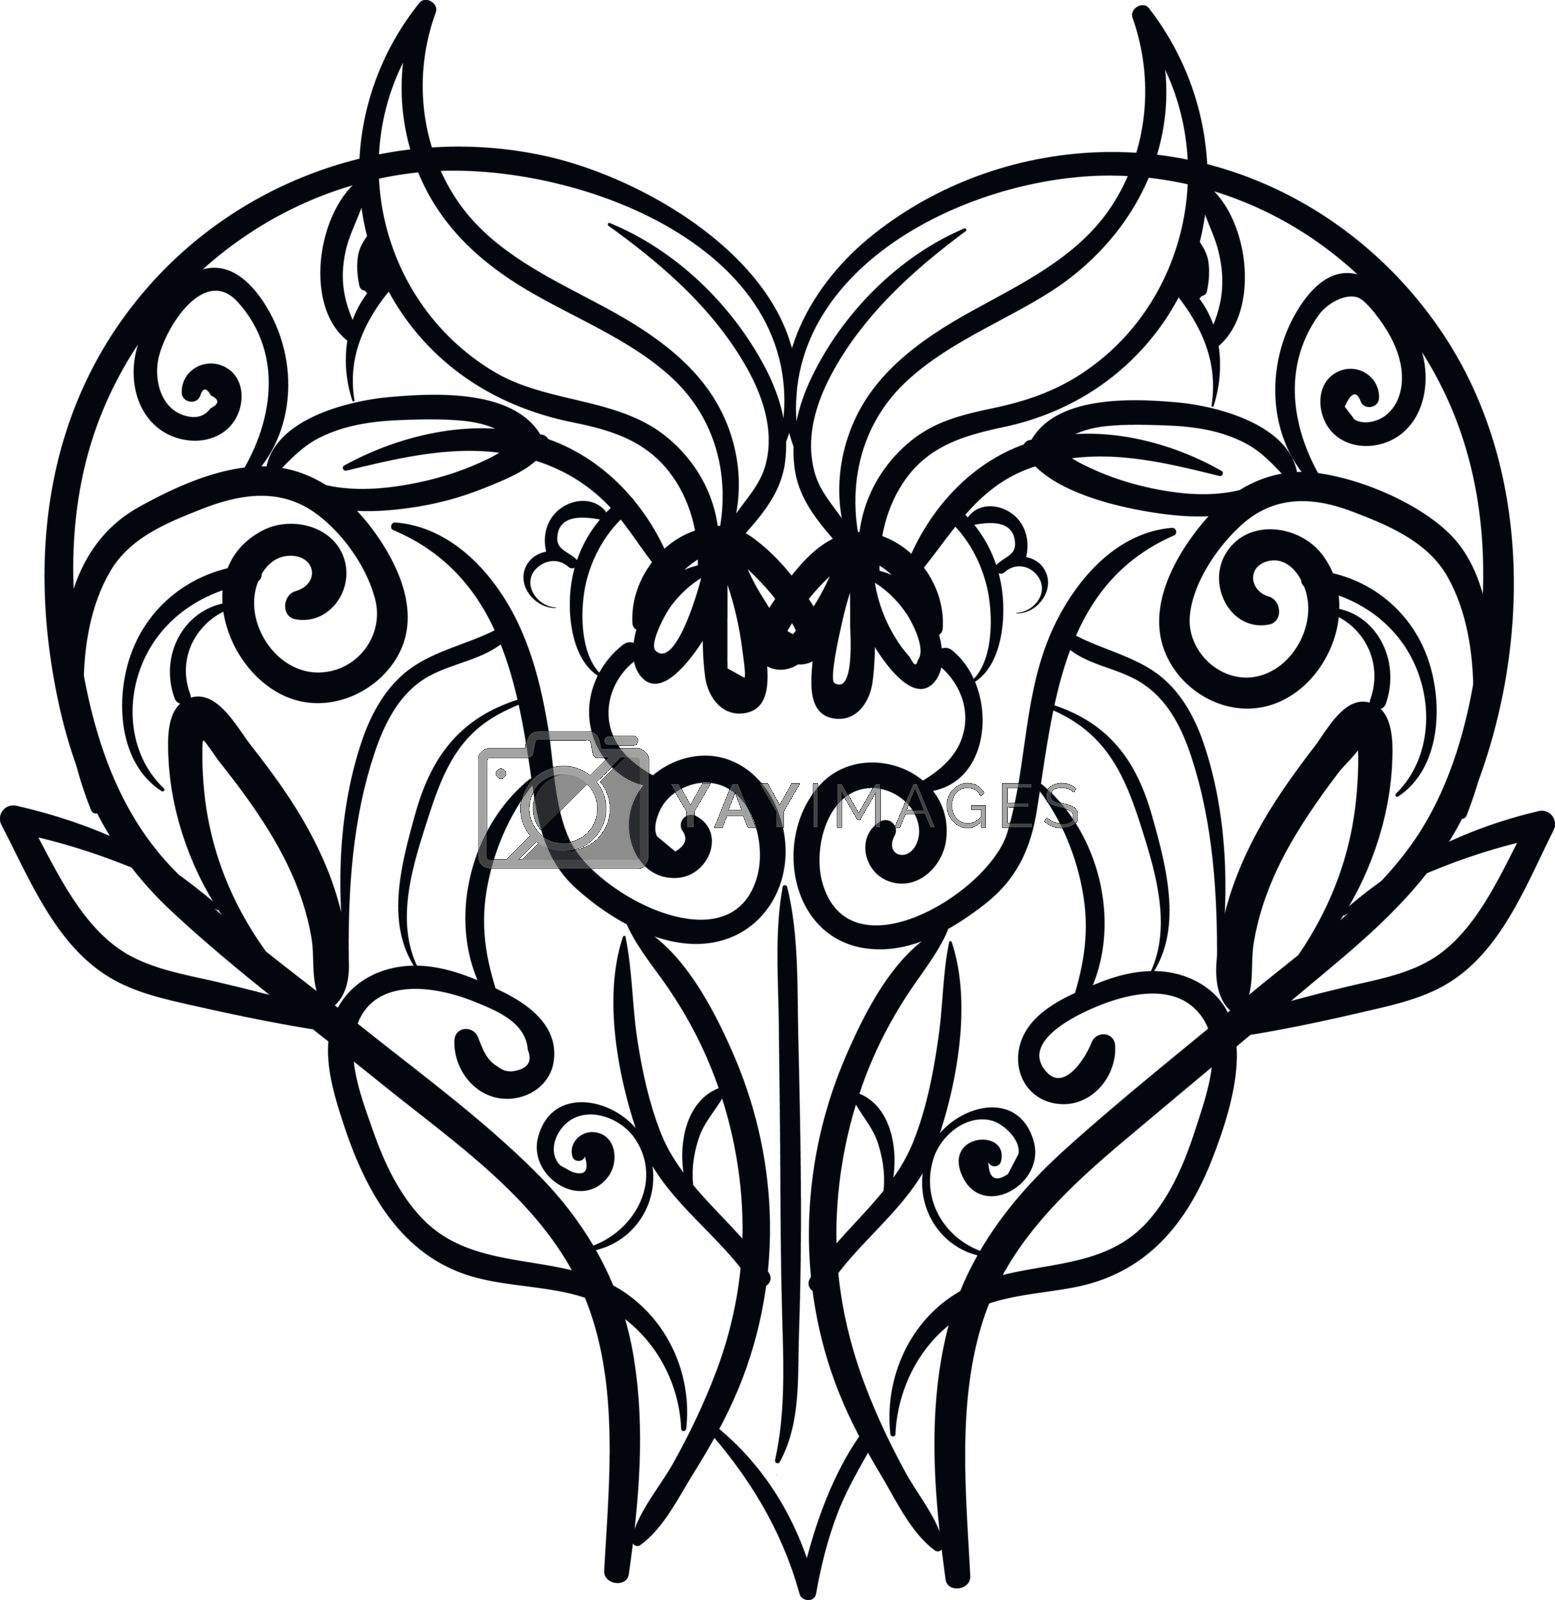 A black and white drawing of a heart shape ornament, vector, color drawing or illustration.